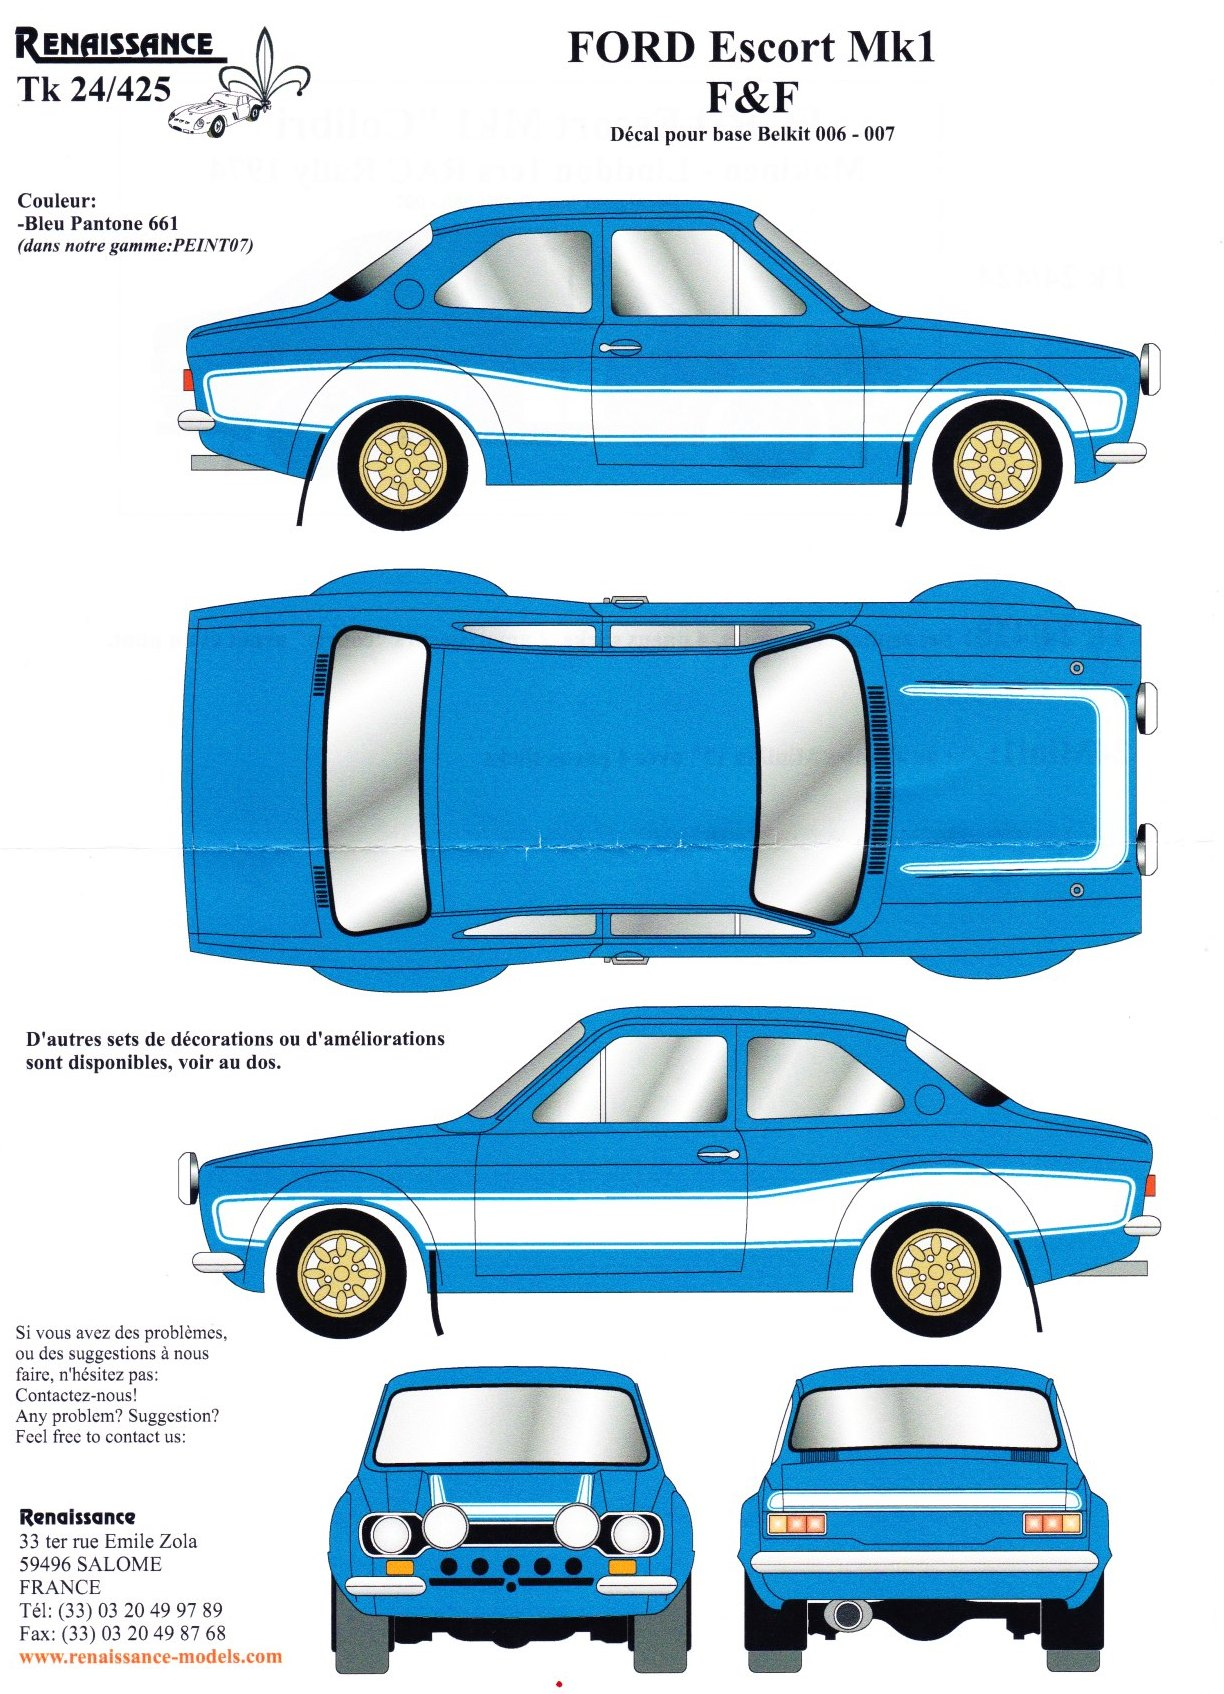 Tk24 425 ford escort mk1 fast and furious 6 decal waterslide decal decal